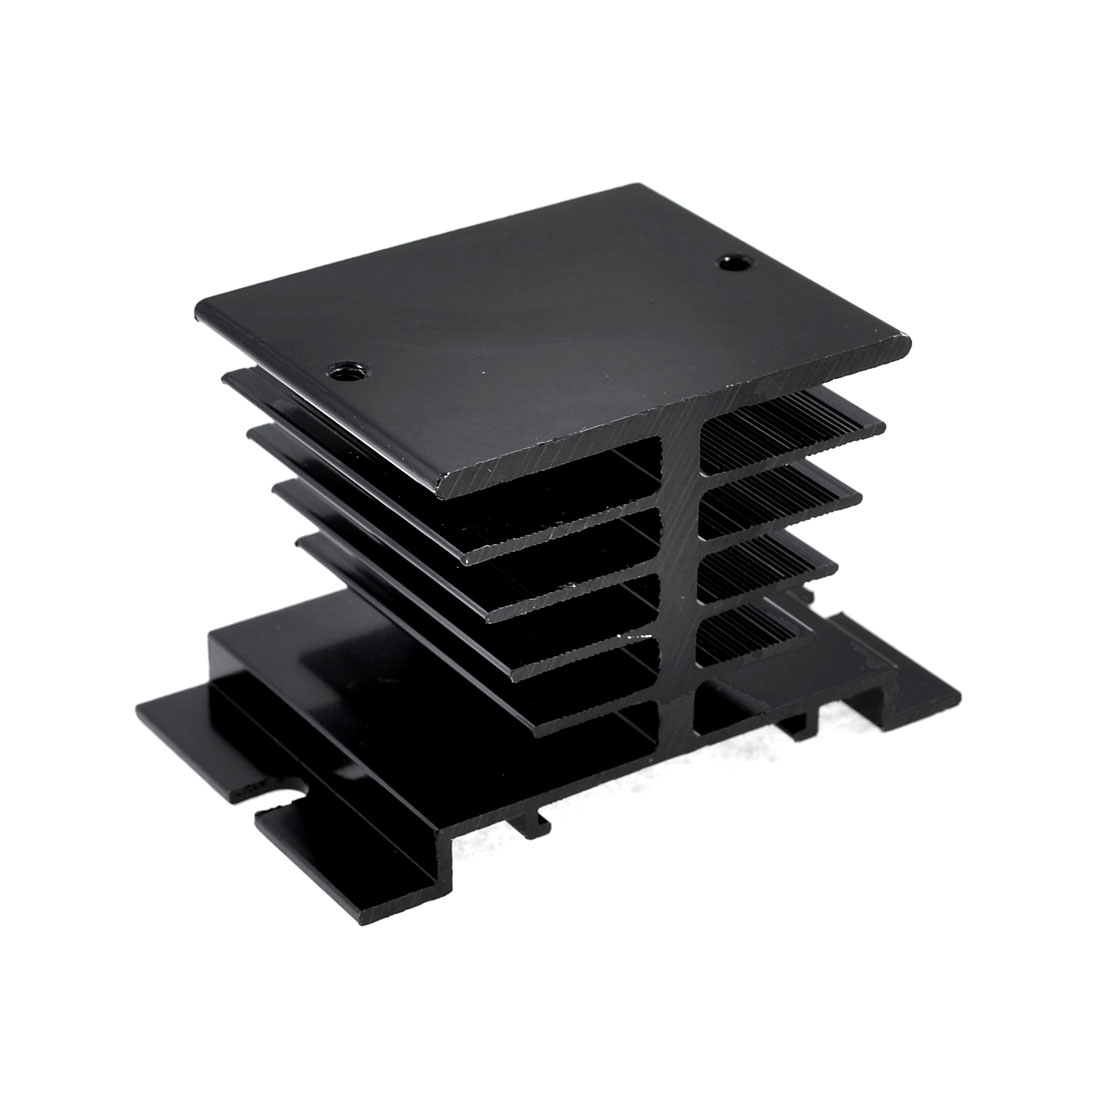 8cm x 5cm x 5cm Black Single Phase Heatsink Heat Diffuse Metal Cooling Fin